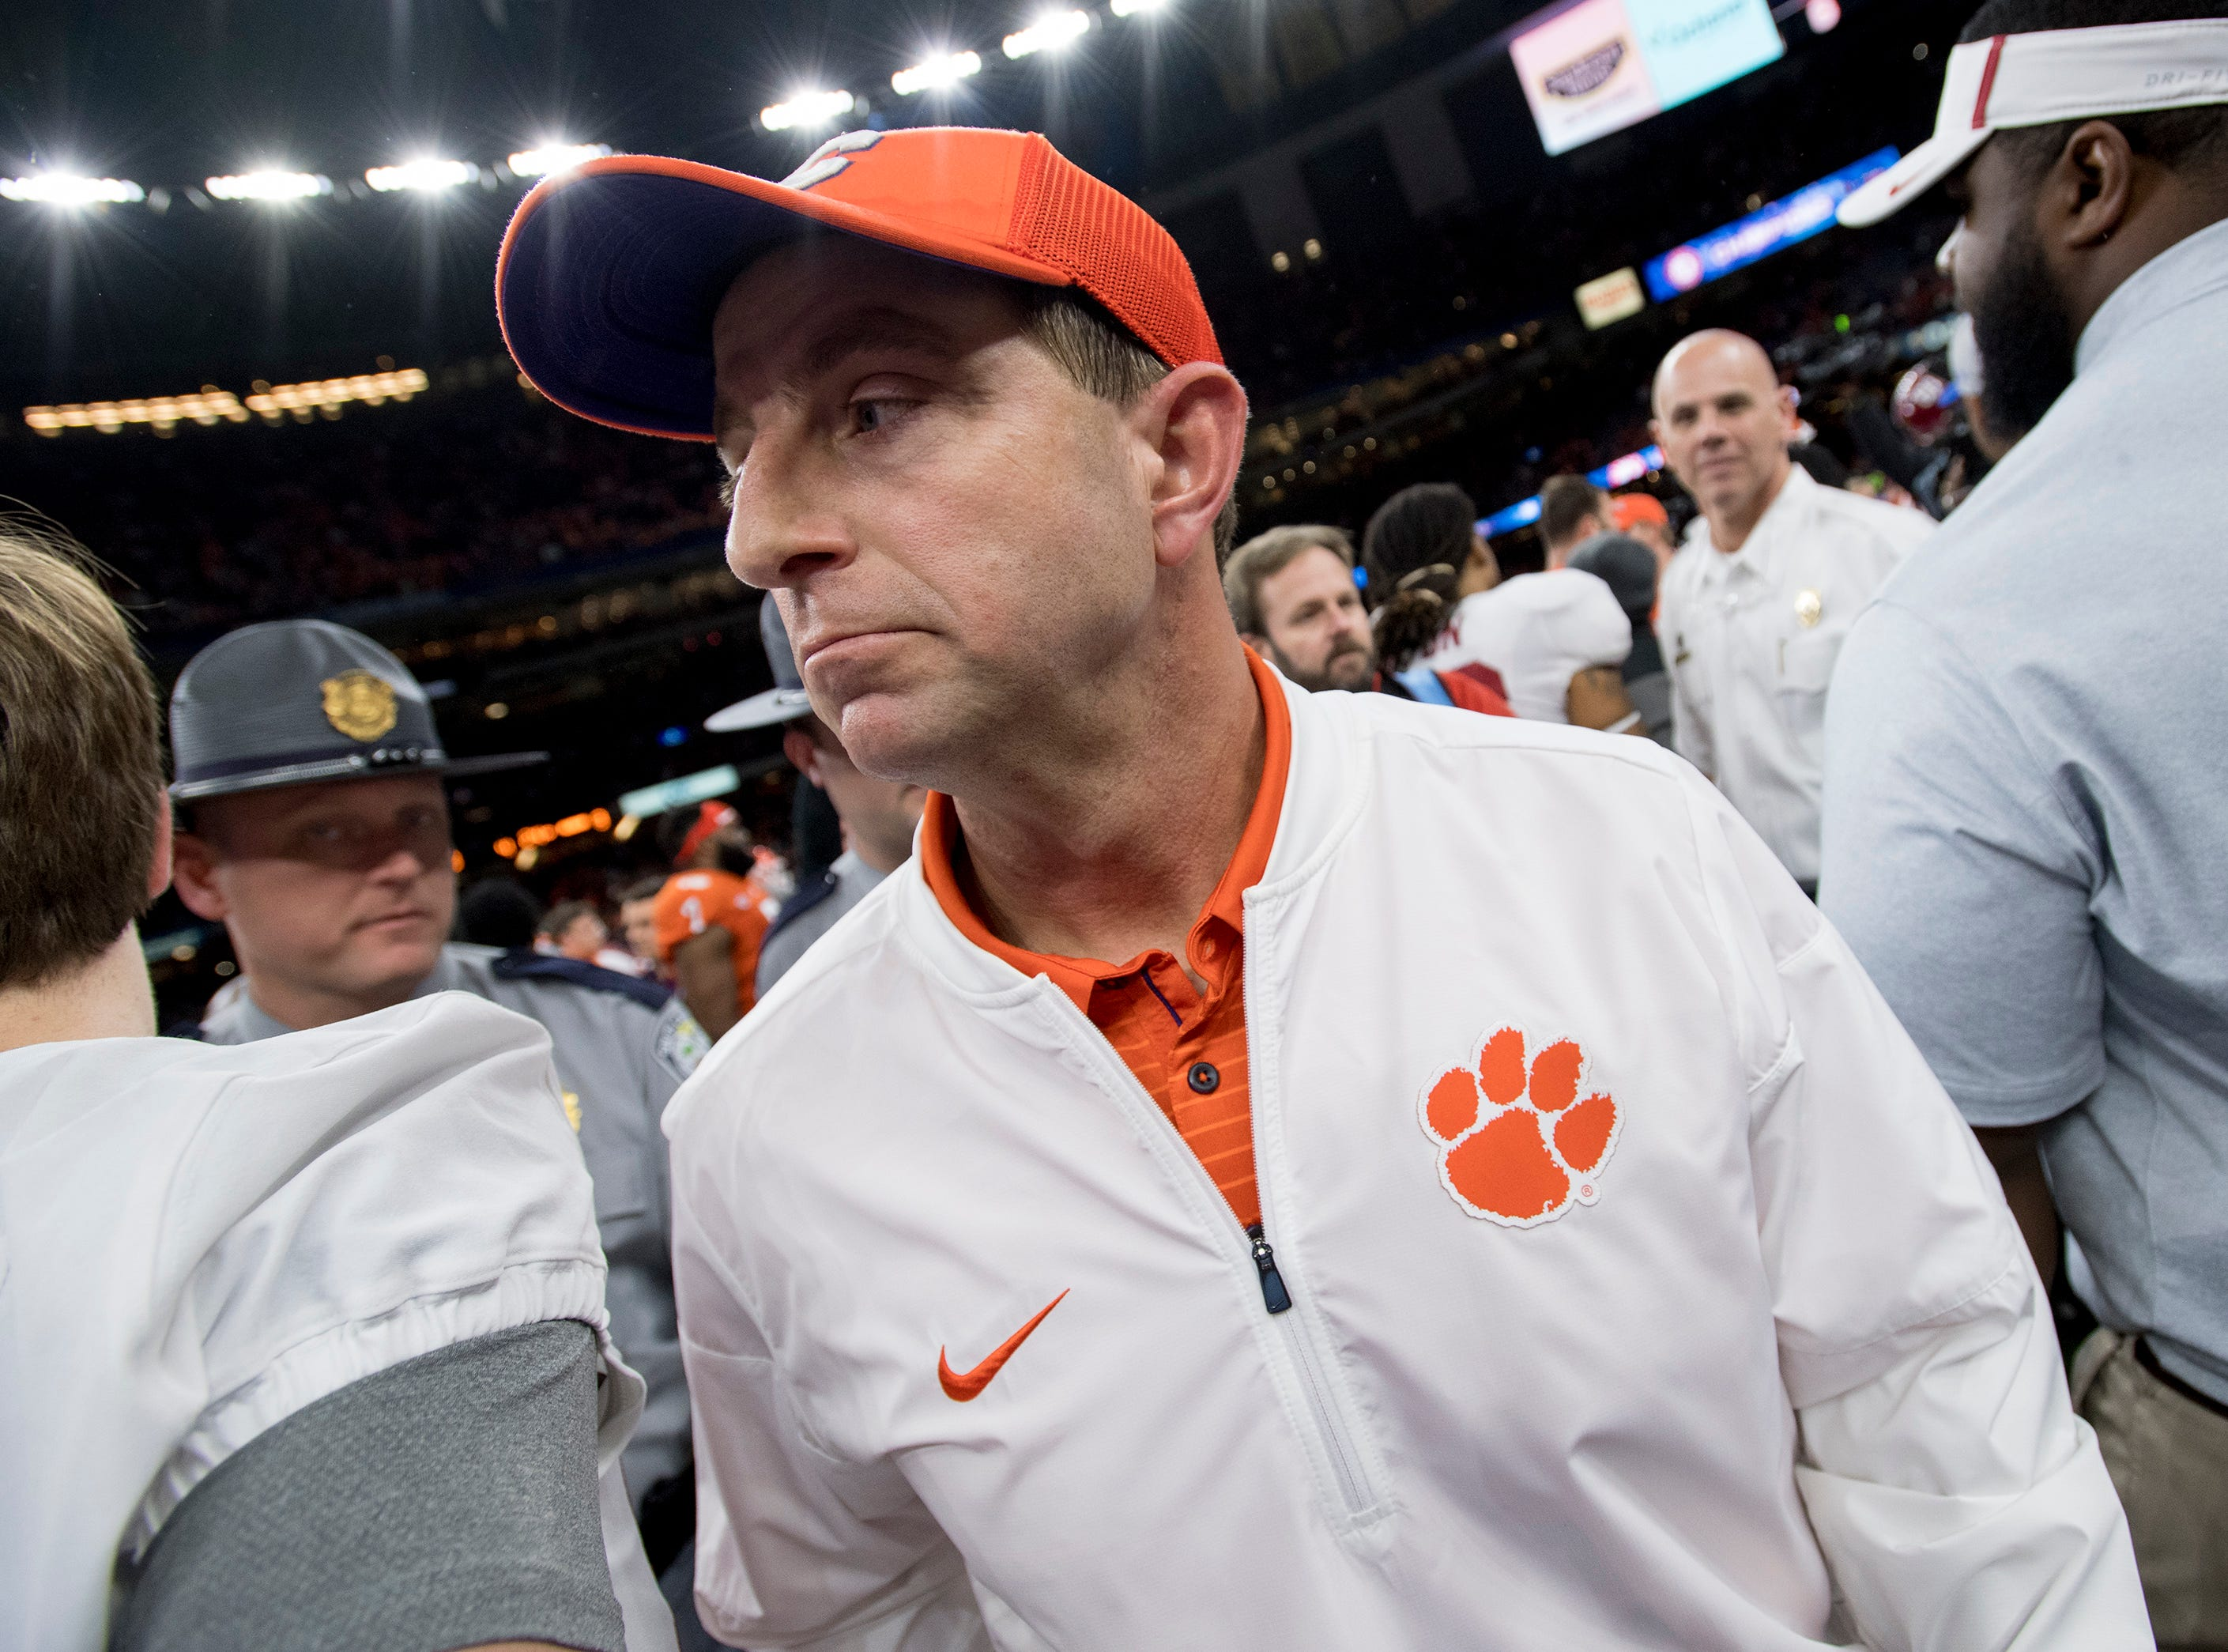 Clemson head coach Dabo Swinney  walks off the field after losing to Alabama in the Sugar Bowl at the Superdome in New Orleans, La. on Monday January 1, 2018.